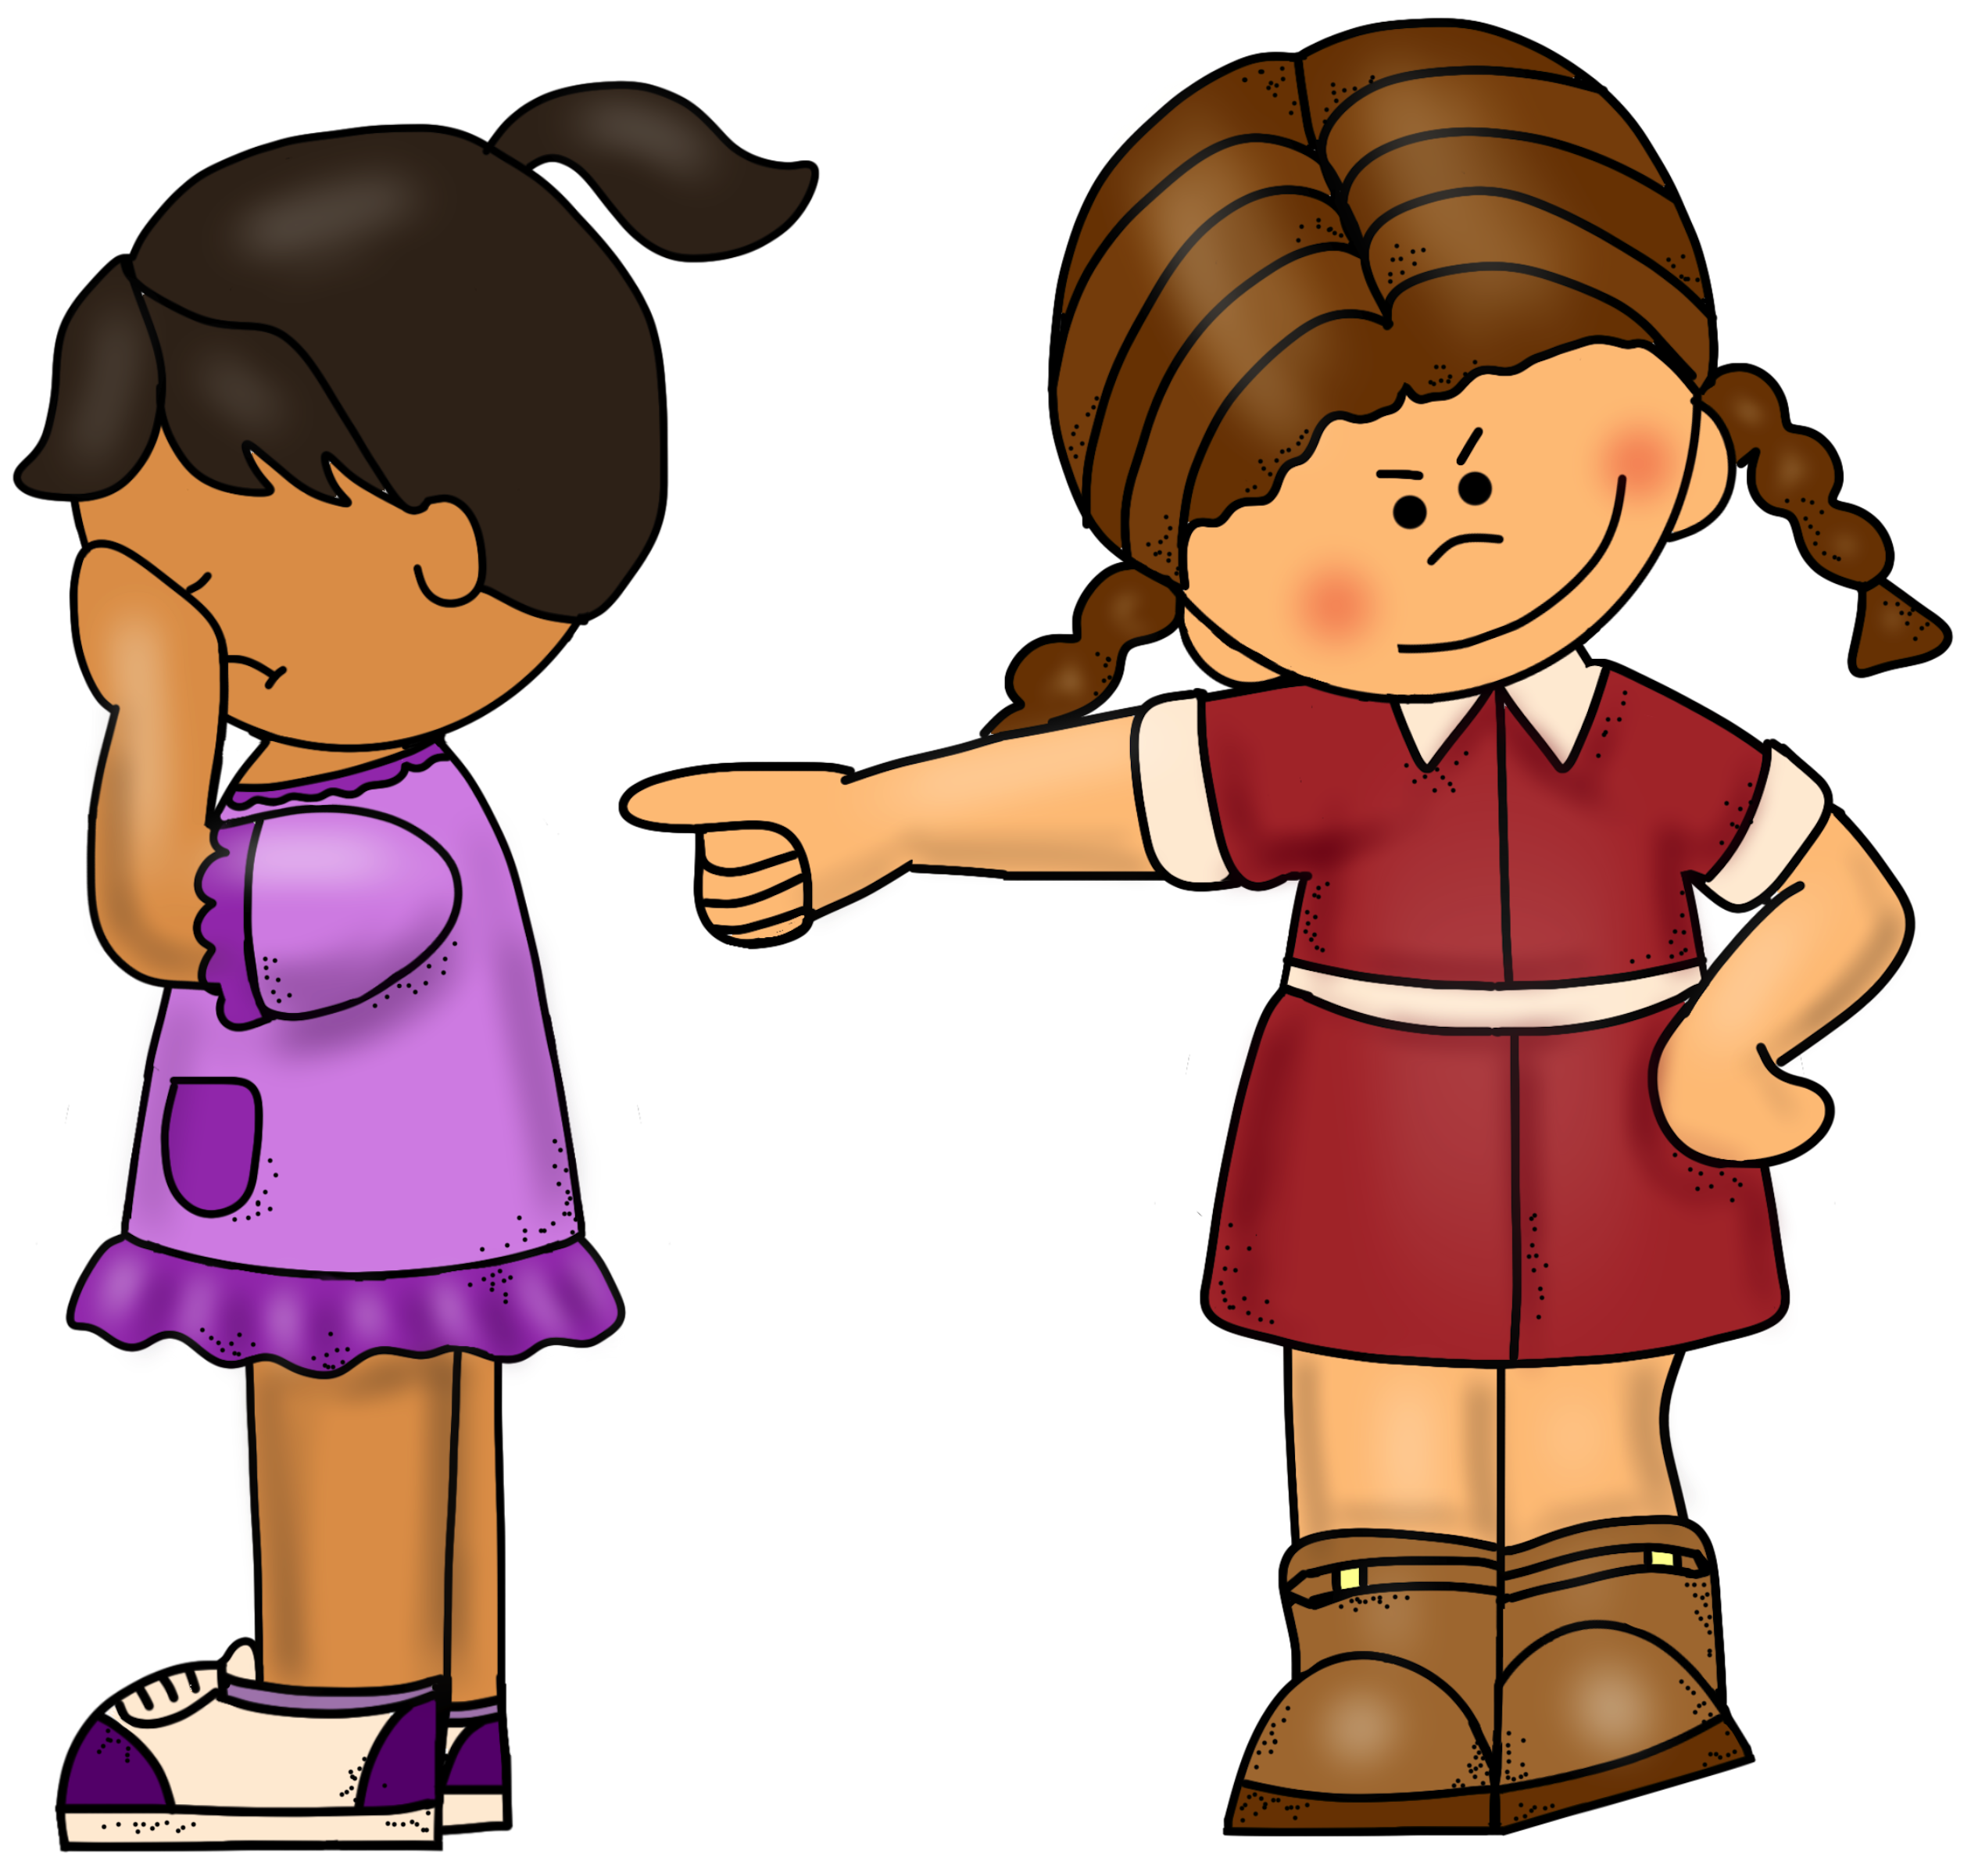 Bully clipart free download. Bullying drawing kid png